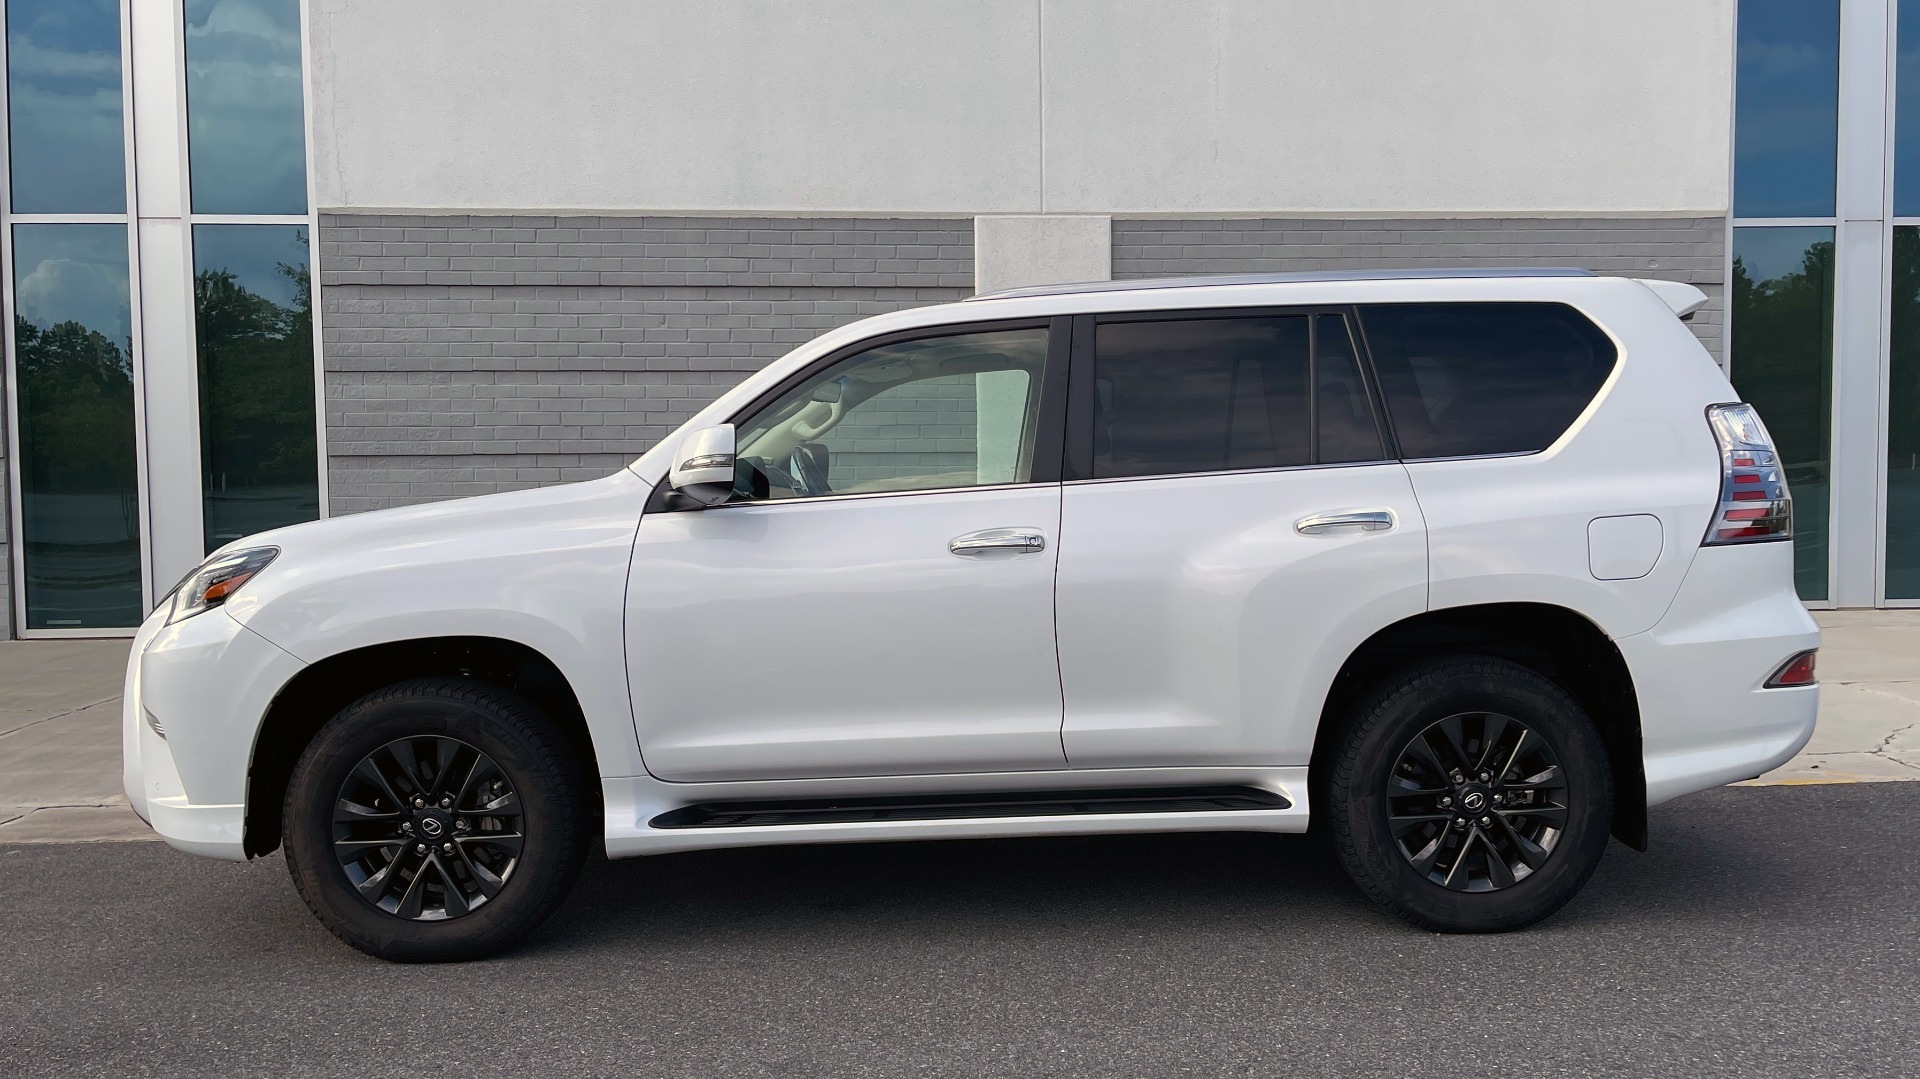 Used 2020 Lexus GX 460 PREMIUM / AWD / NAV / SUNROOF / 3-ROW / REARVIEW for sale $54,495 at Formula Imports in Charlotte NC 28227 4